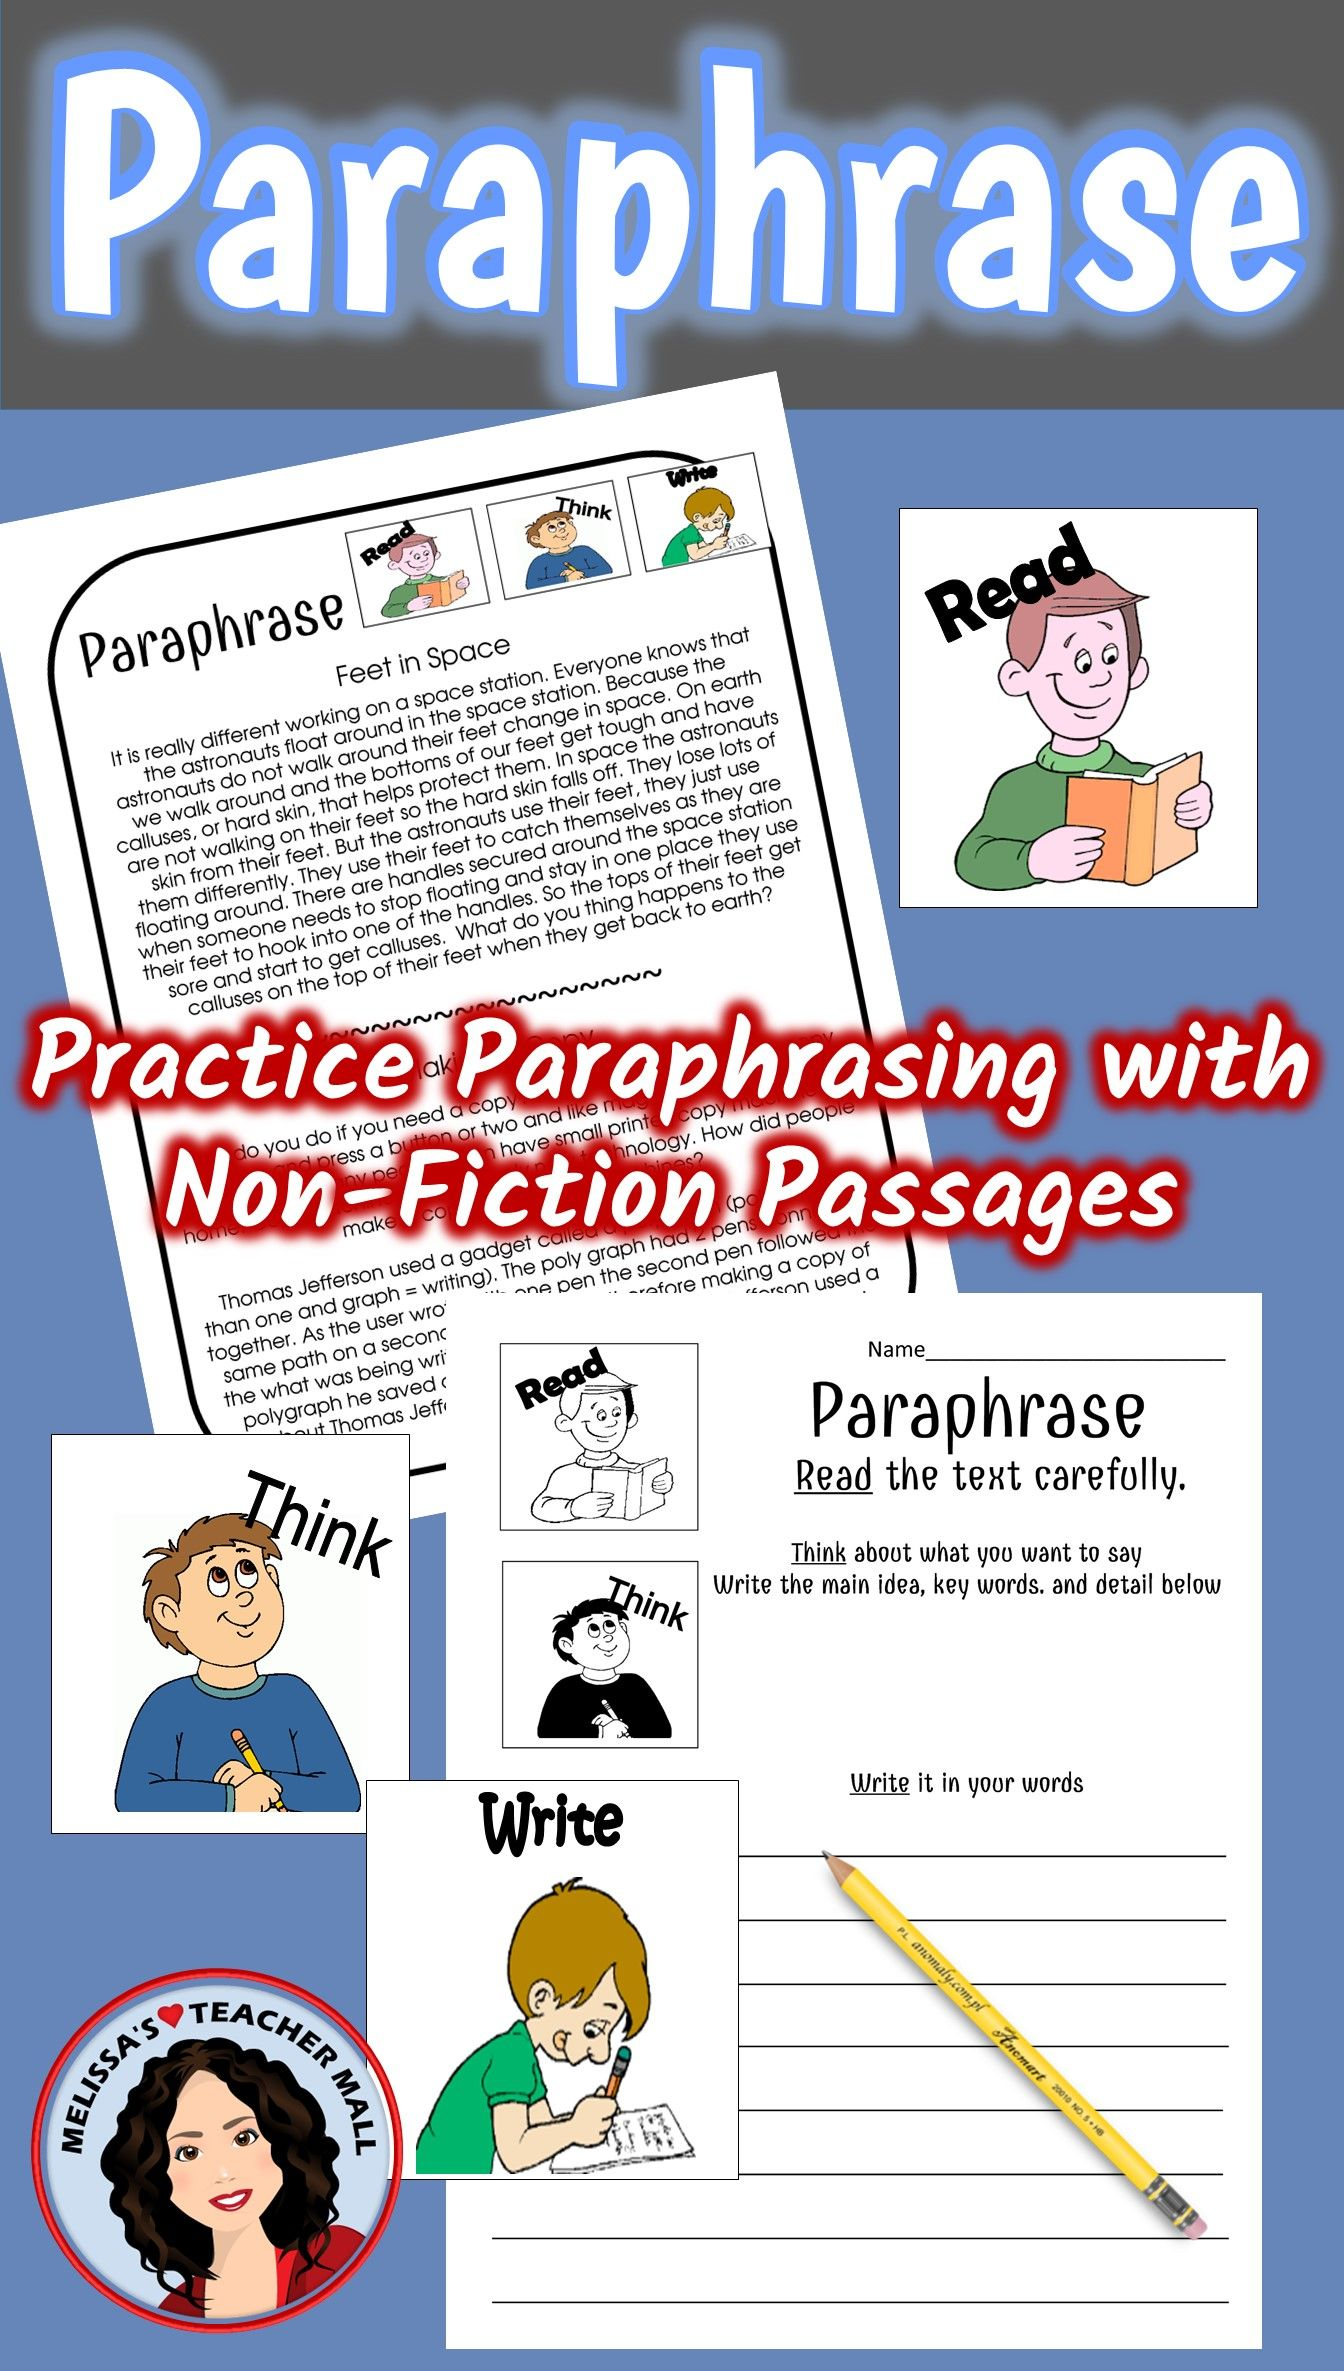 Thi I A Versatile Paraphrasing Activity That Can Be Used Many Way Help Your Student Un Activitie Early Education Teaching Schools Call Center